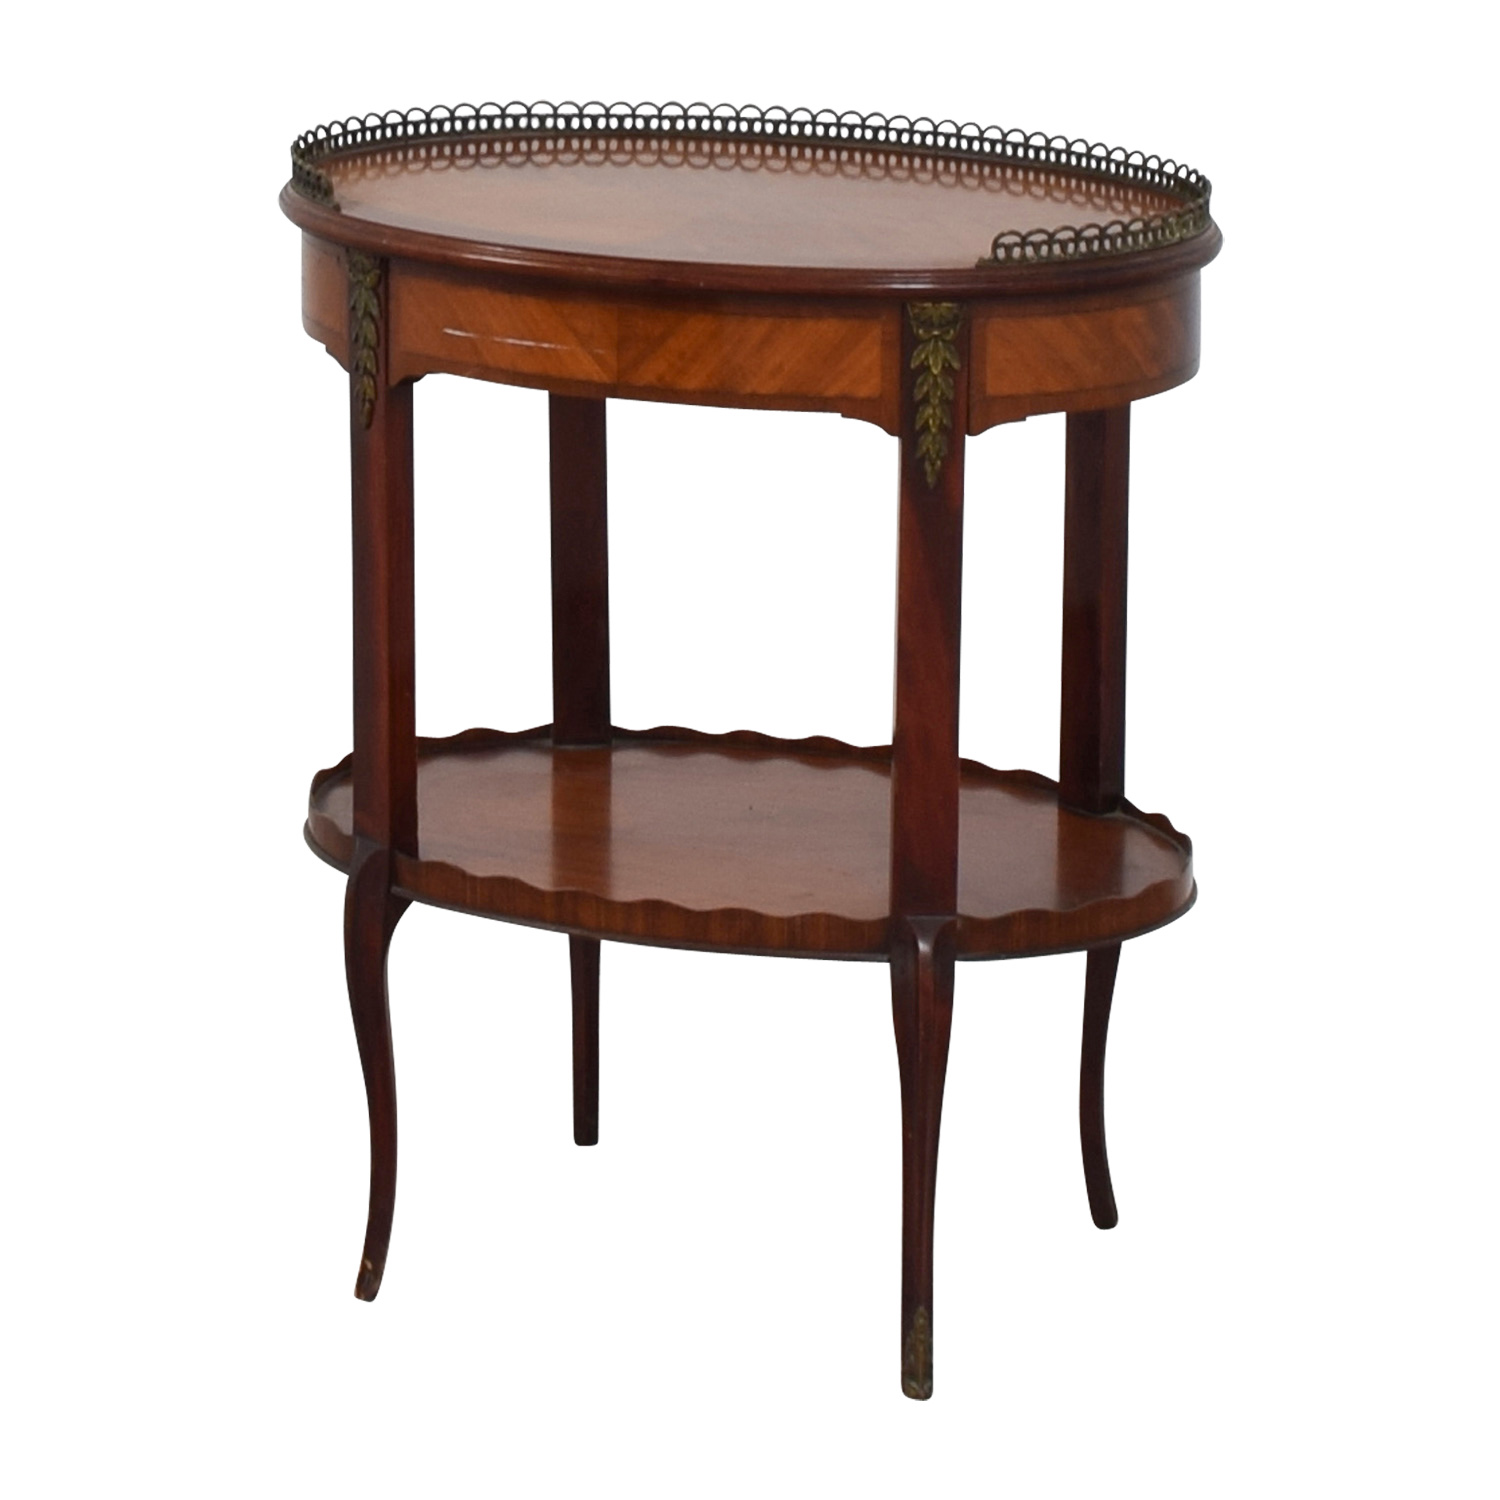 90 off furniture masters furniture masters oval end for Furniture 90 off